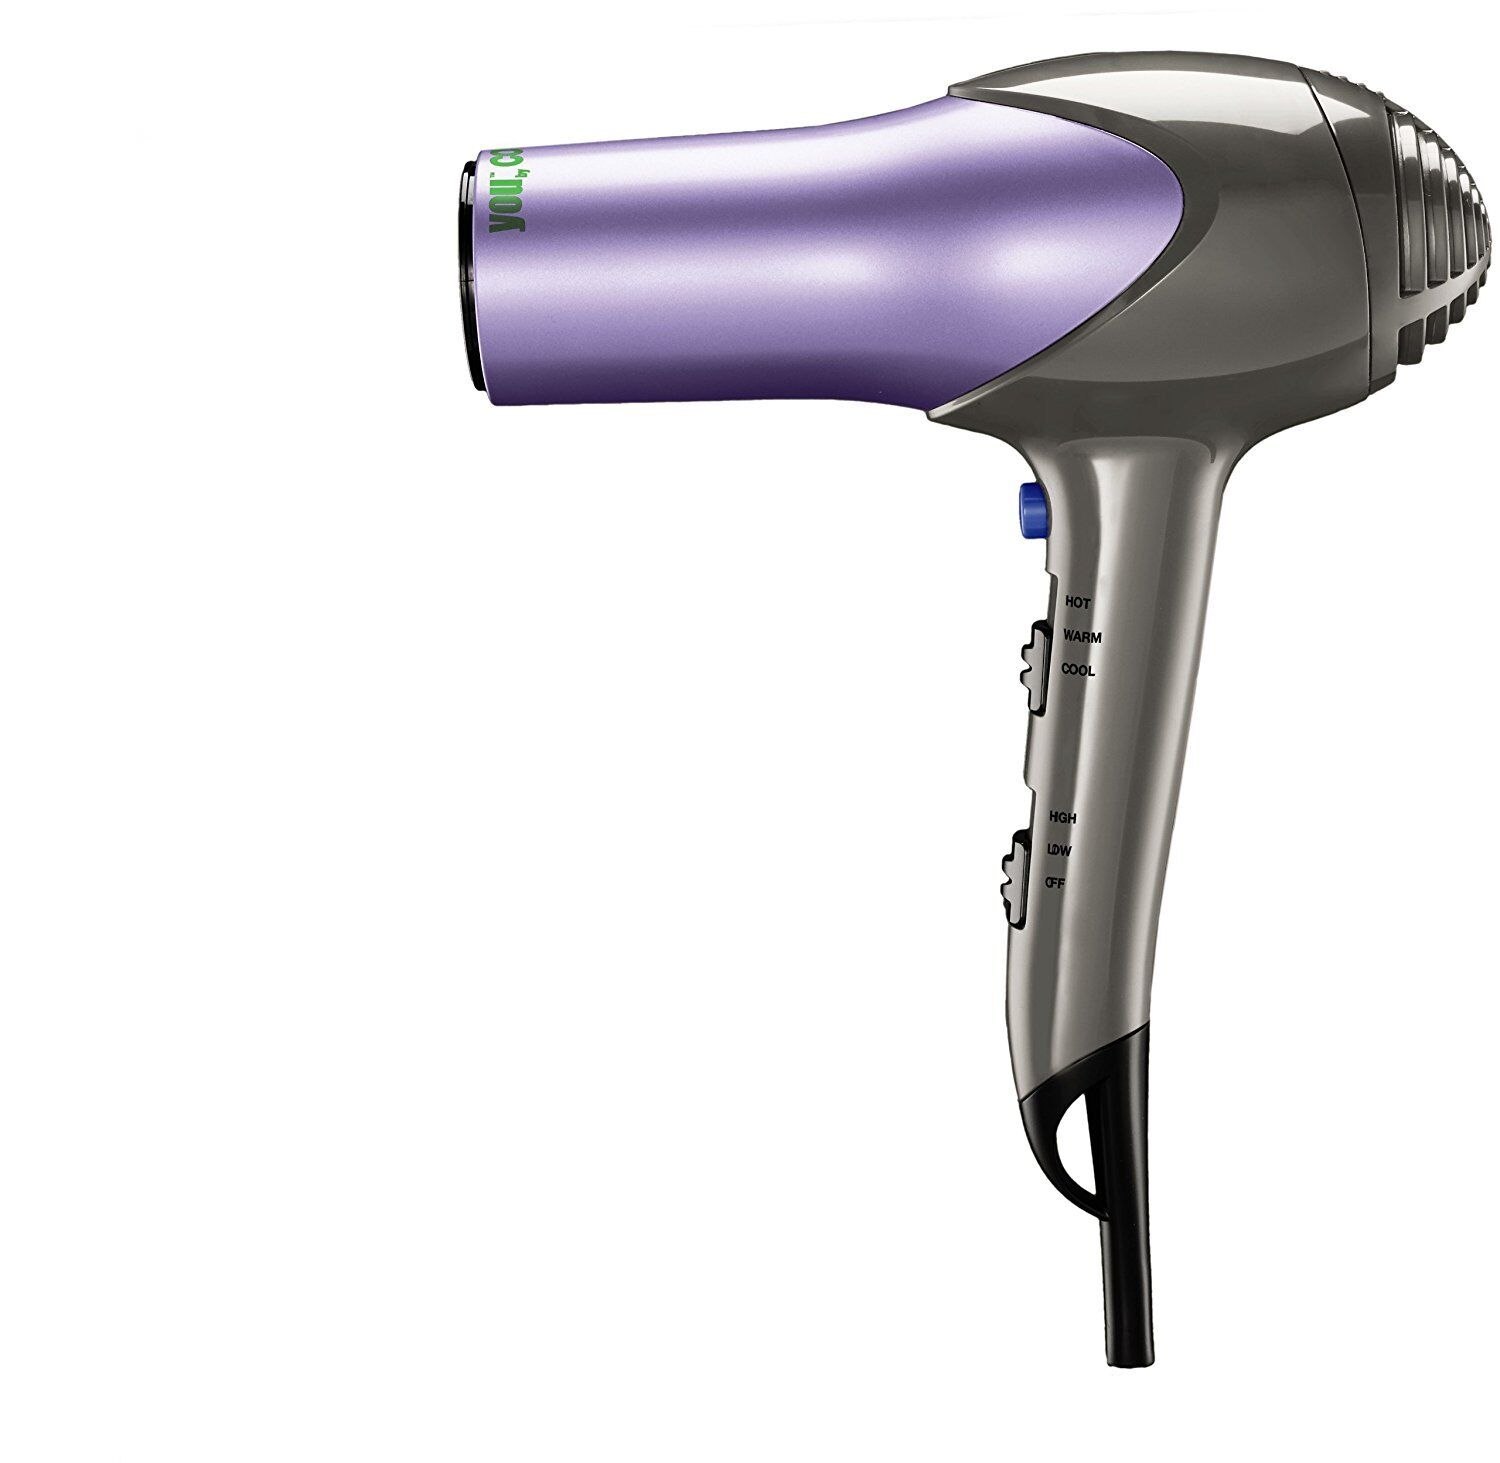 Conair YOU Style and Protect 1875 Watt Ceramic 2-in-1 Hair D